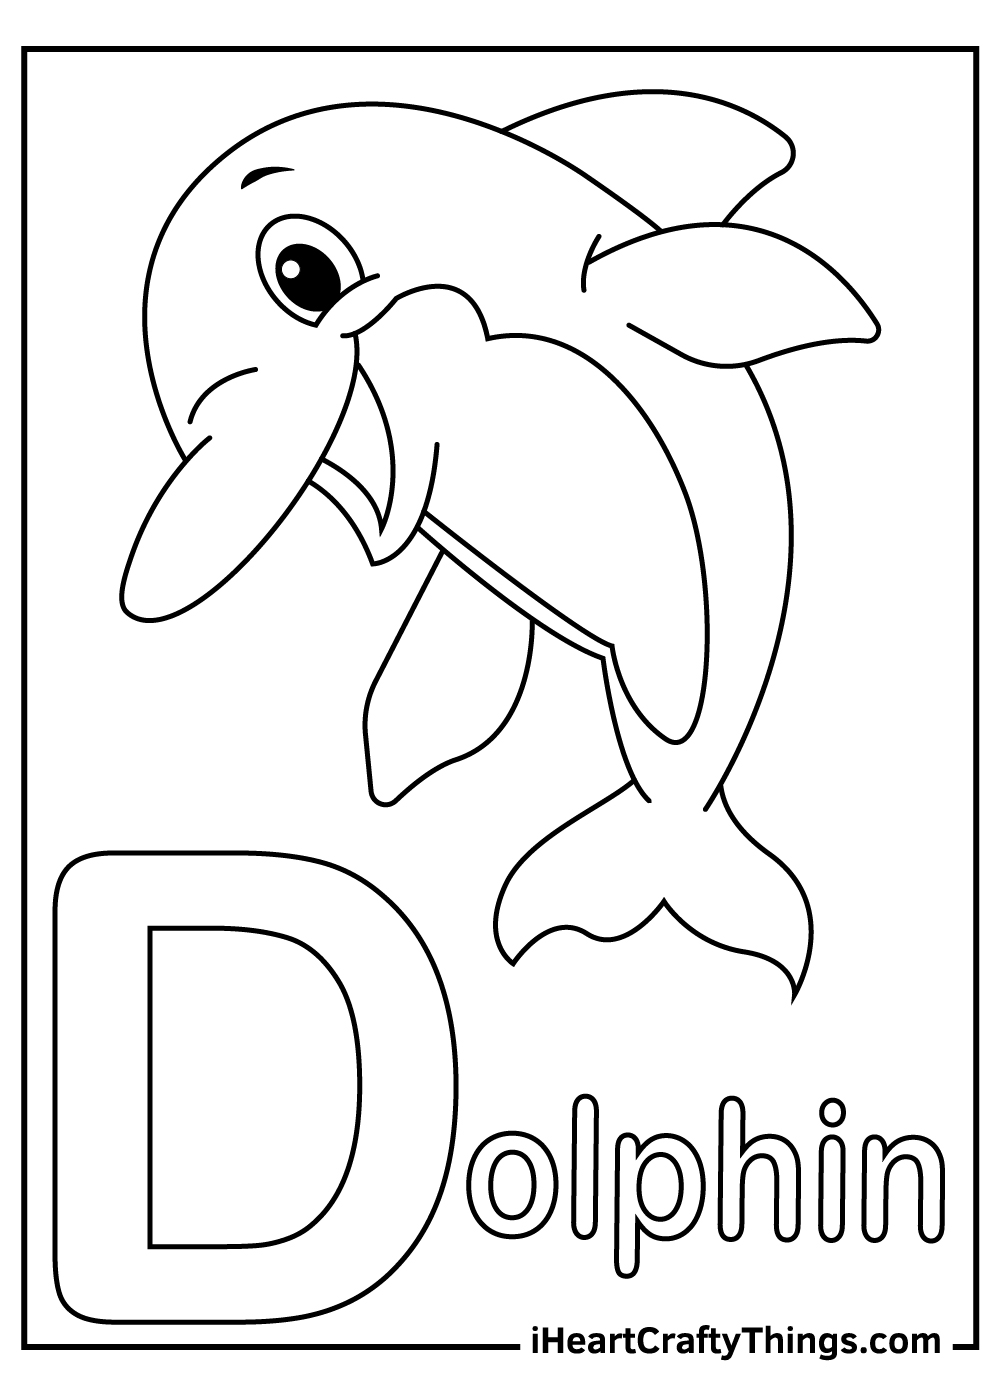 d is for dolphin coloring pages free download